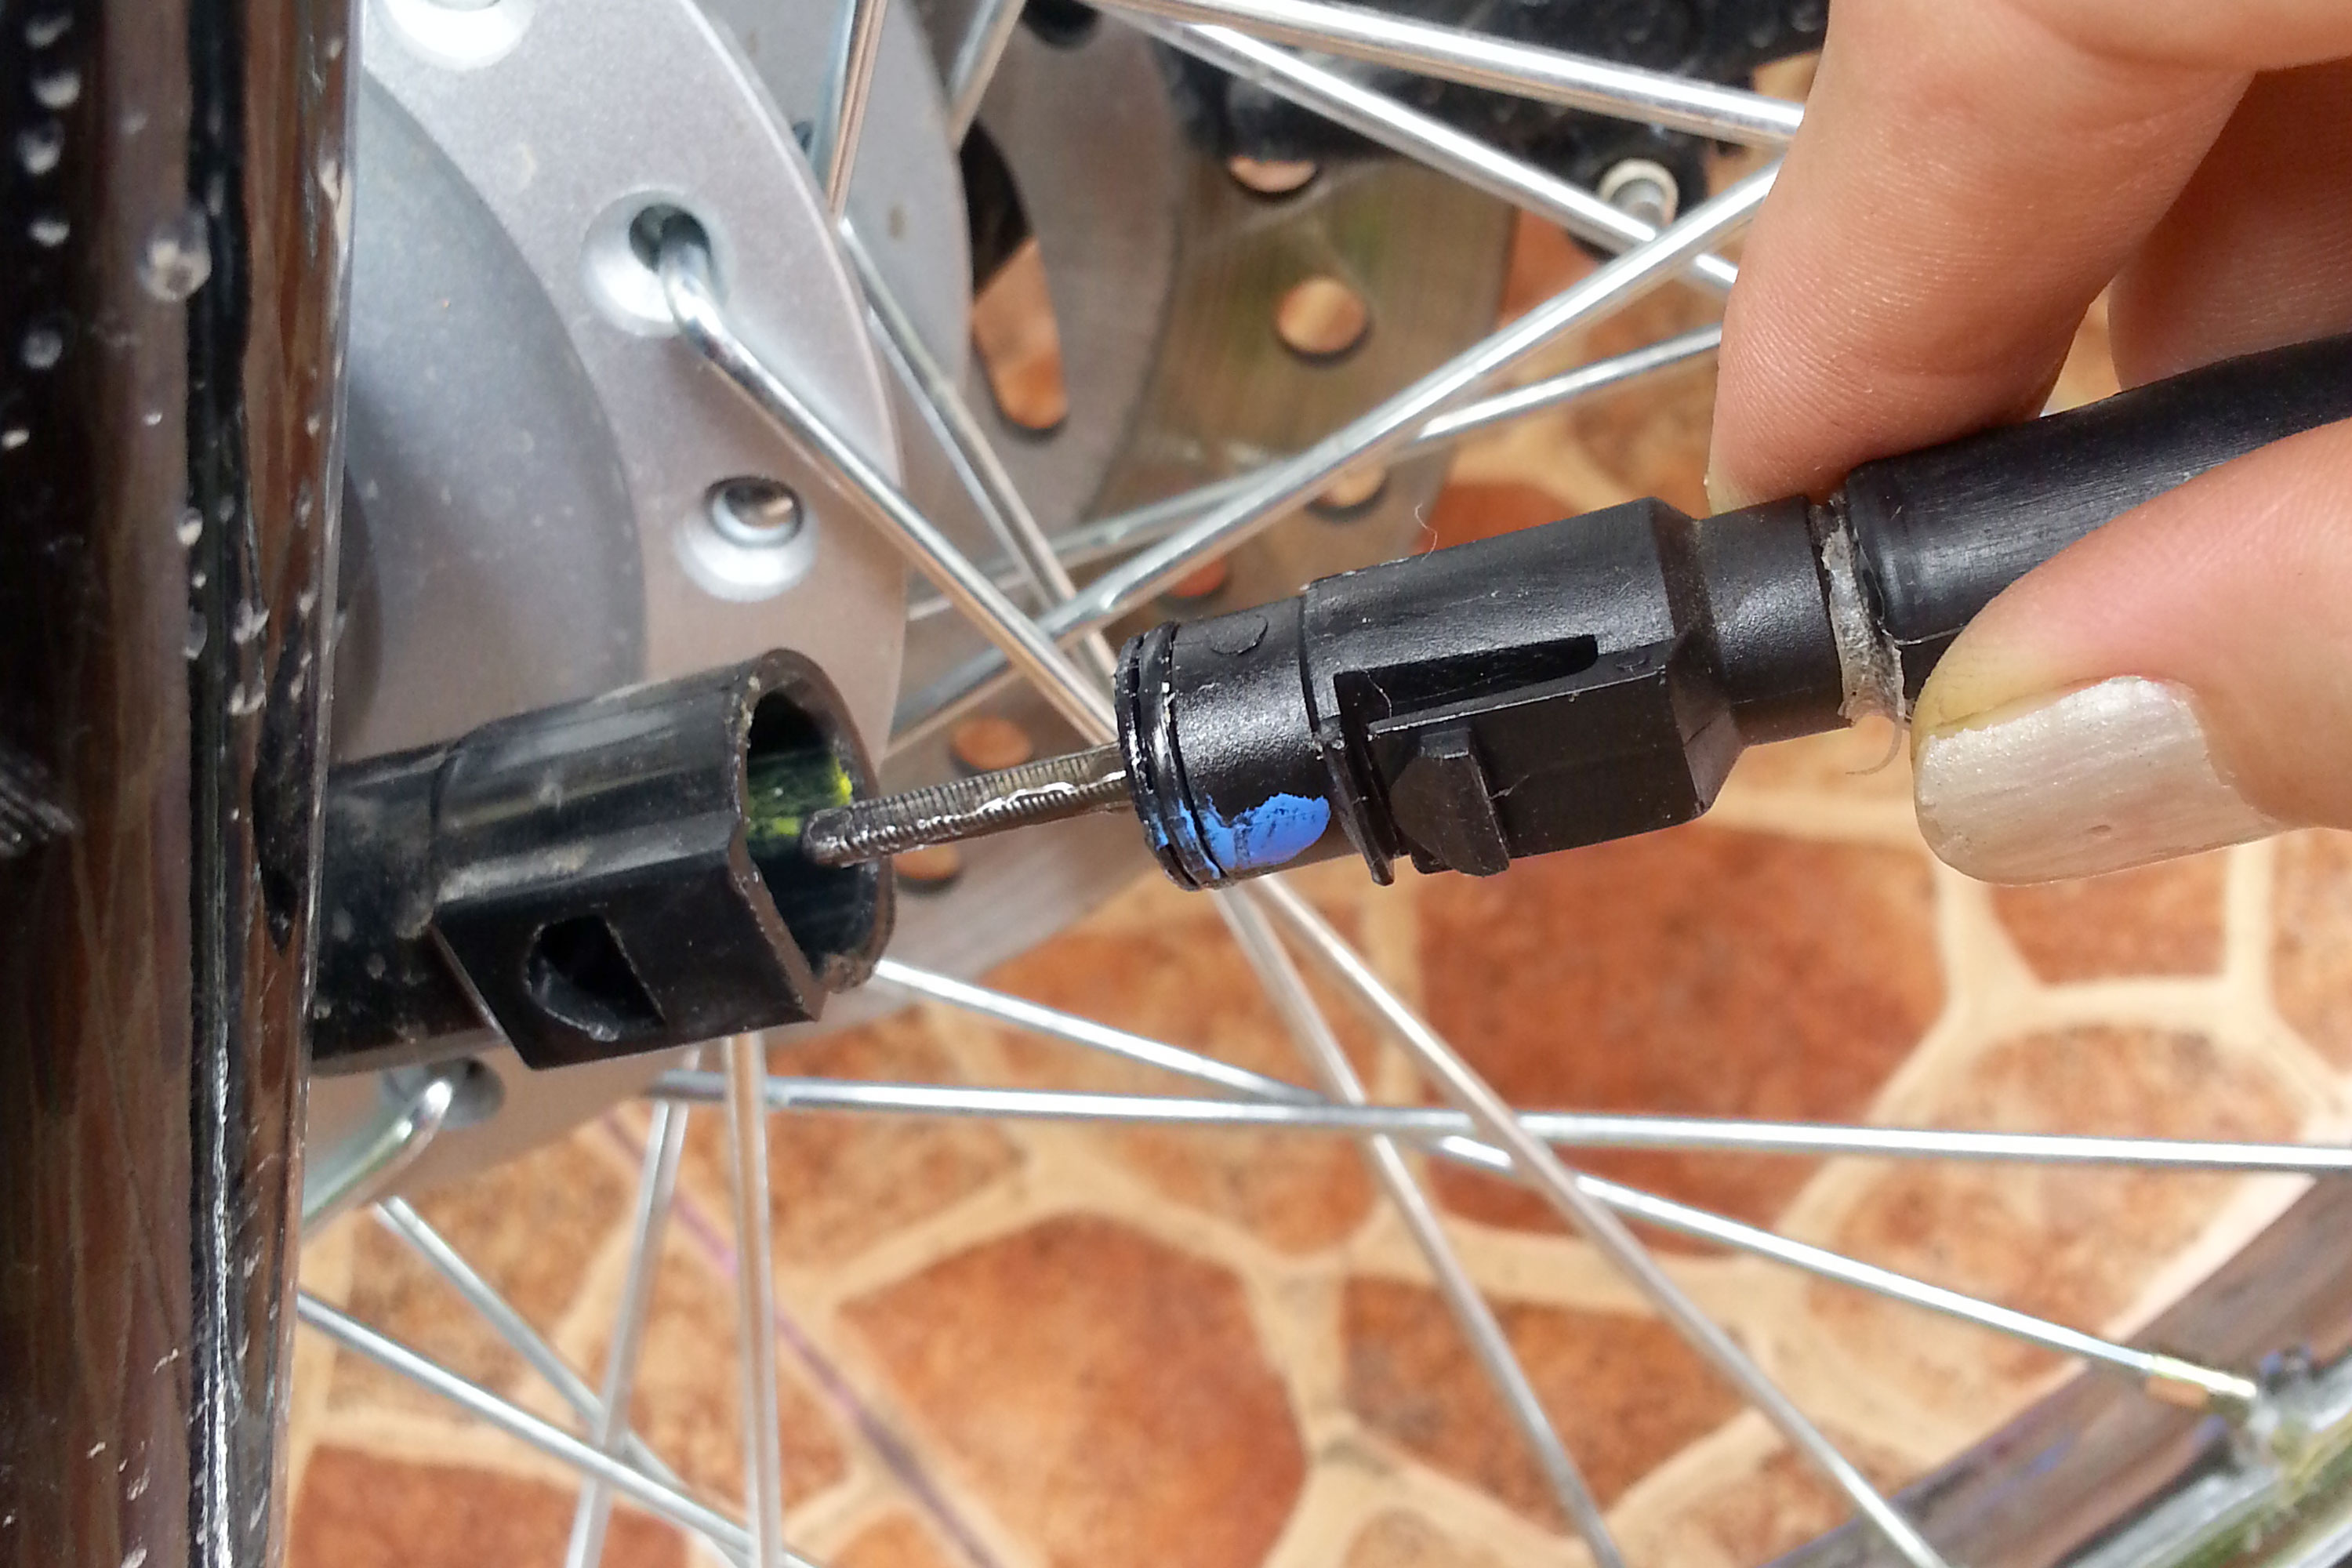 How To Repair A Motorcycles Speedometer Gone Outdoors Your Honda 110 Wiring Diagram Trial Bike Locate The Lower End Of Cable Where It Attaches At Front Wheel Hub Use Small Metric Wrench Loosen Fitting That Connects